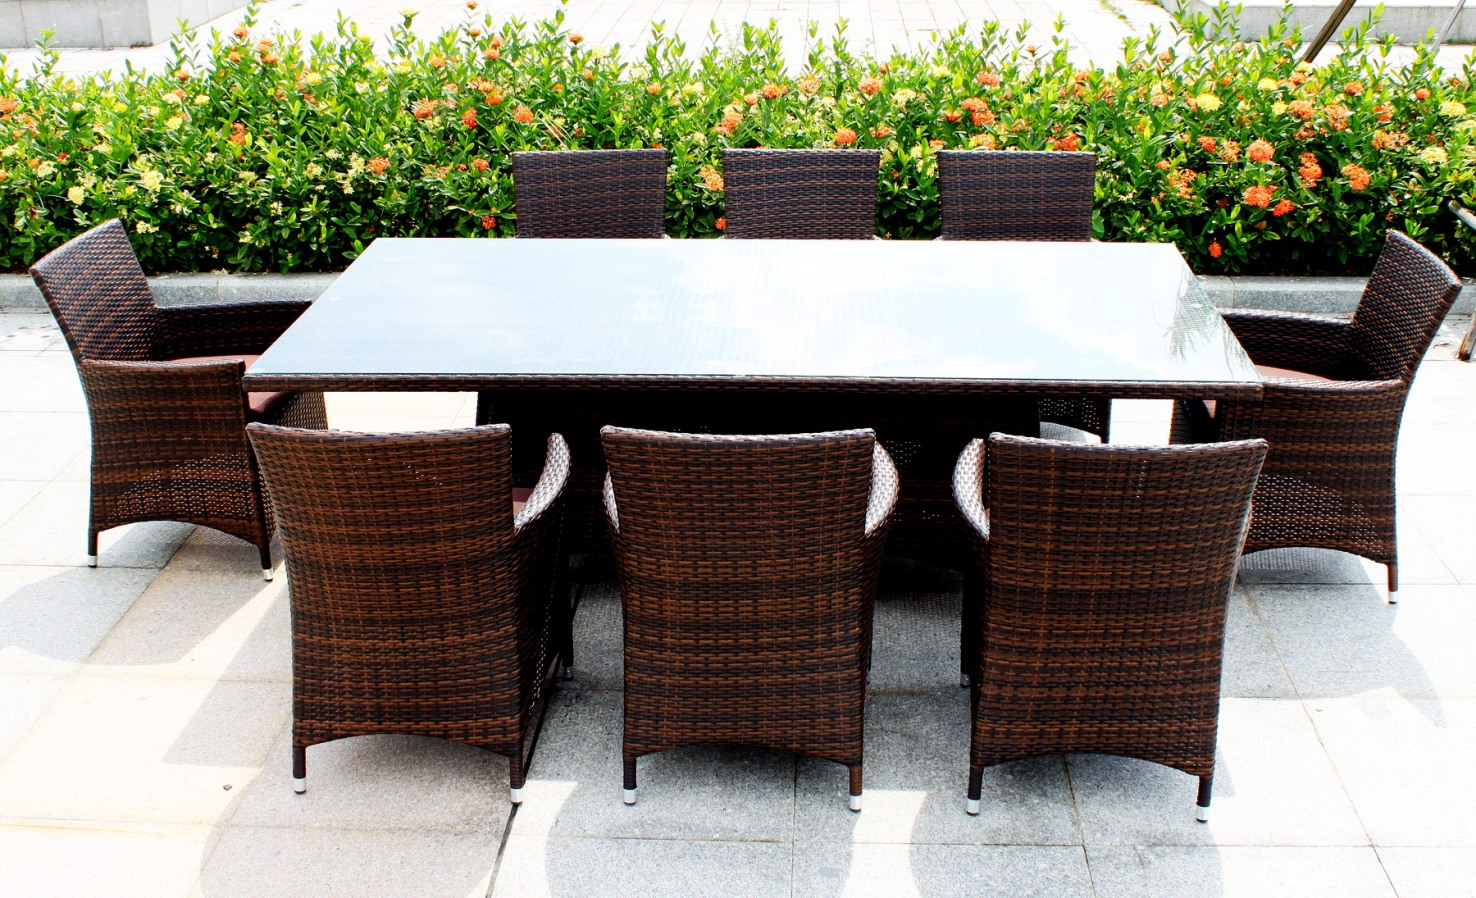 Outdoor dining table superb design ideas 24 outdoor for Table design outdoor